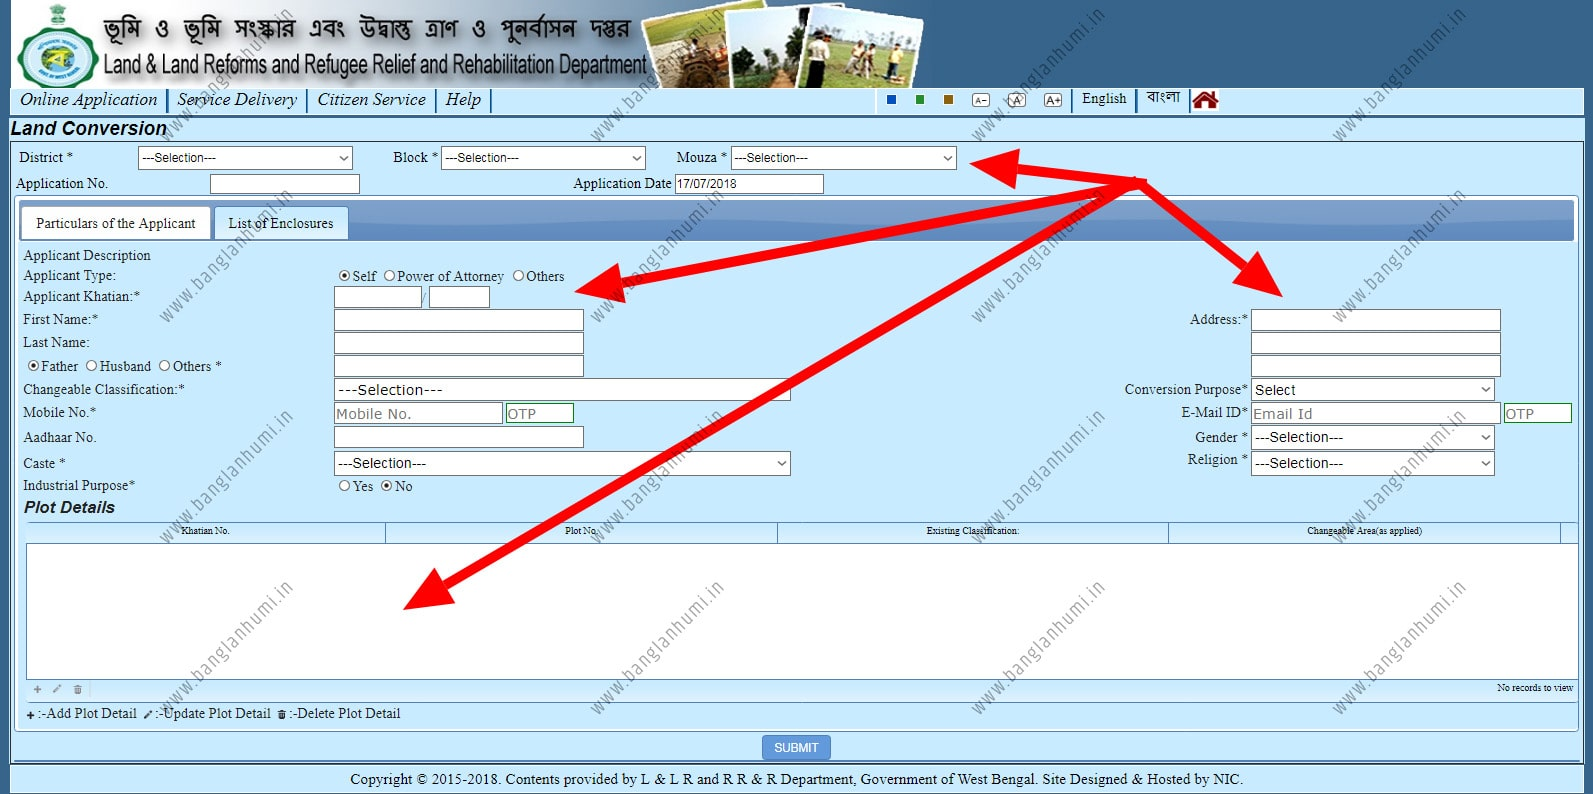 Banglarbhumi Online Conversion Application of West Bengal Land Record